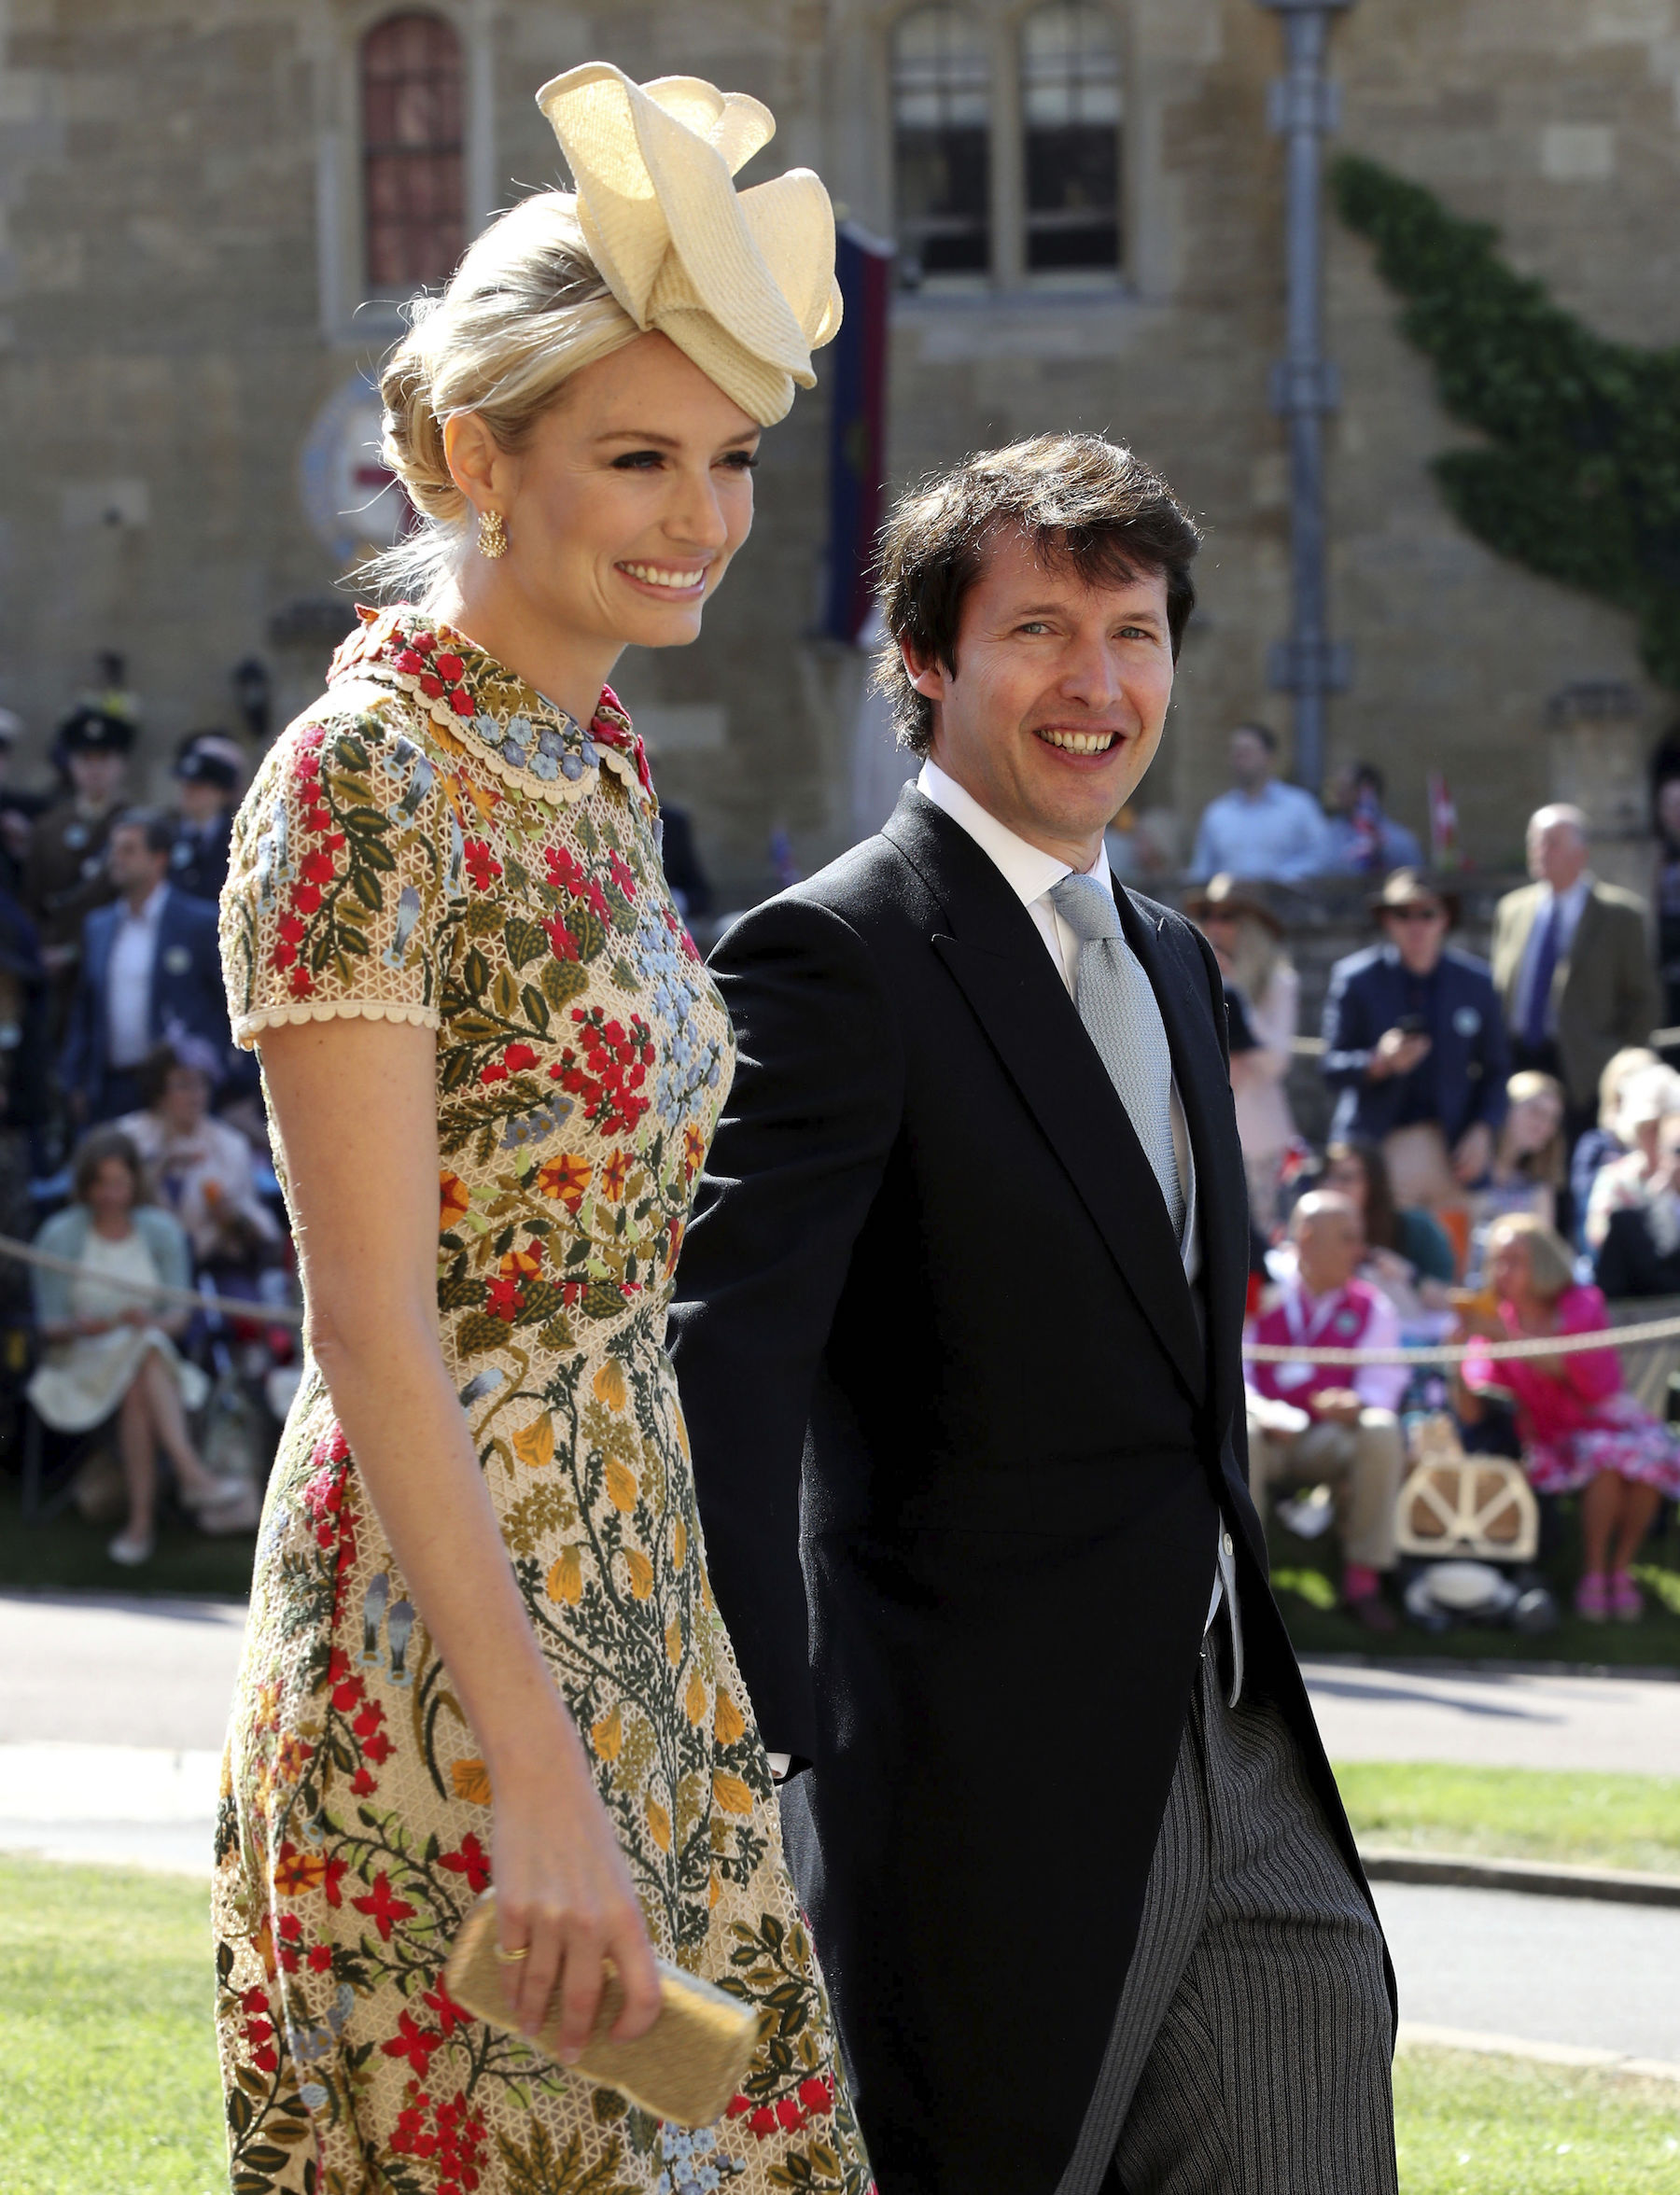 <div class='meta'><div class='origin-logo' data-origin='AP'></div><span class='caption-text' data-credit='Chris Radburn/PA Wire'>James Blunt and Sofia Wellesley arrive at St George's Chapel at Windsor Castle for the wedding of Meghan Markle and Prince Harry.</span></div>